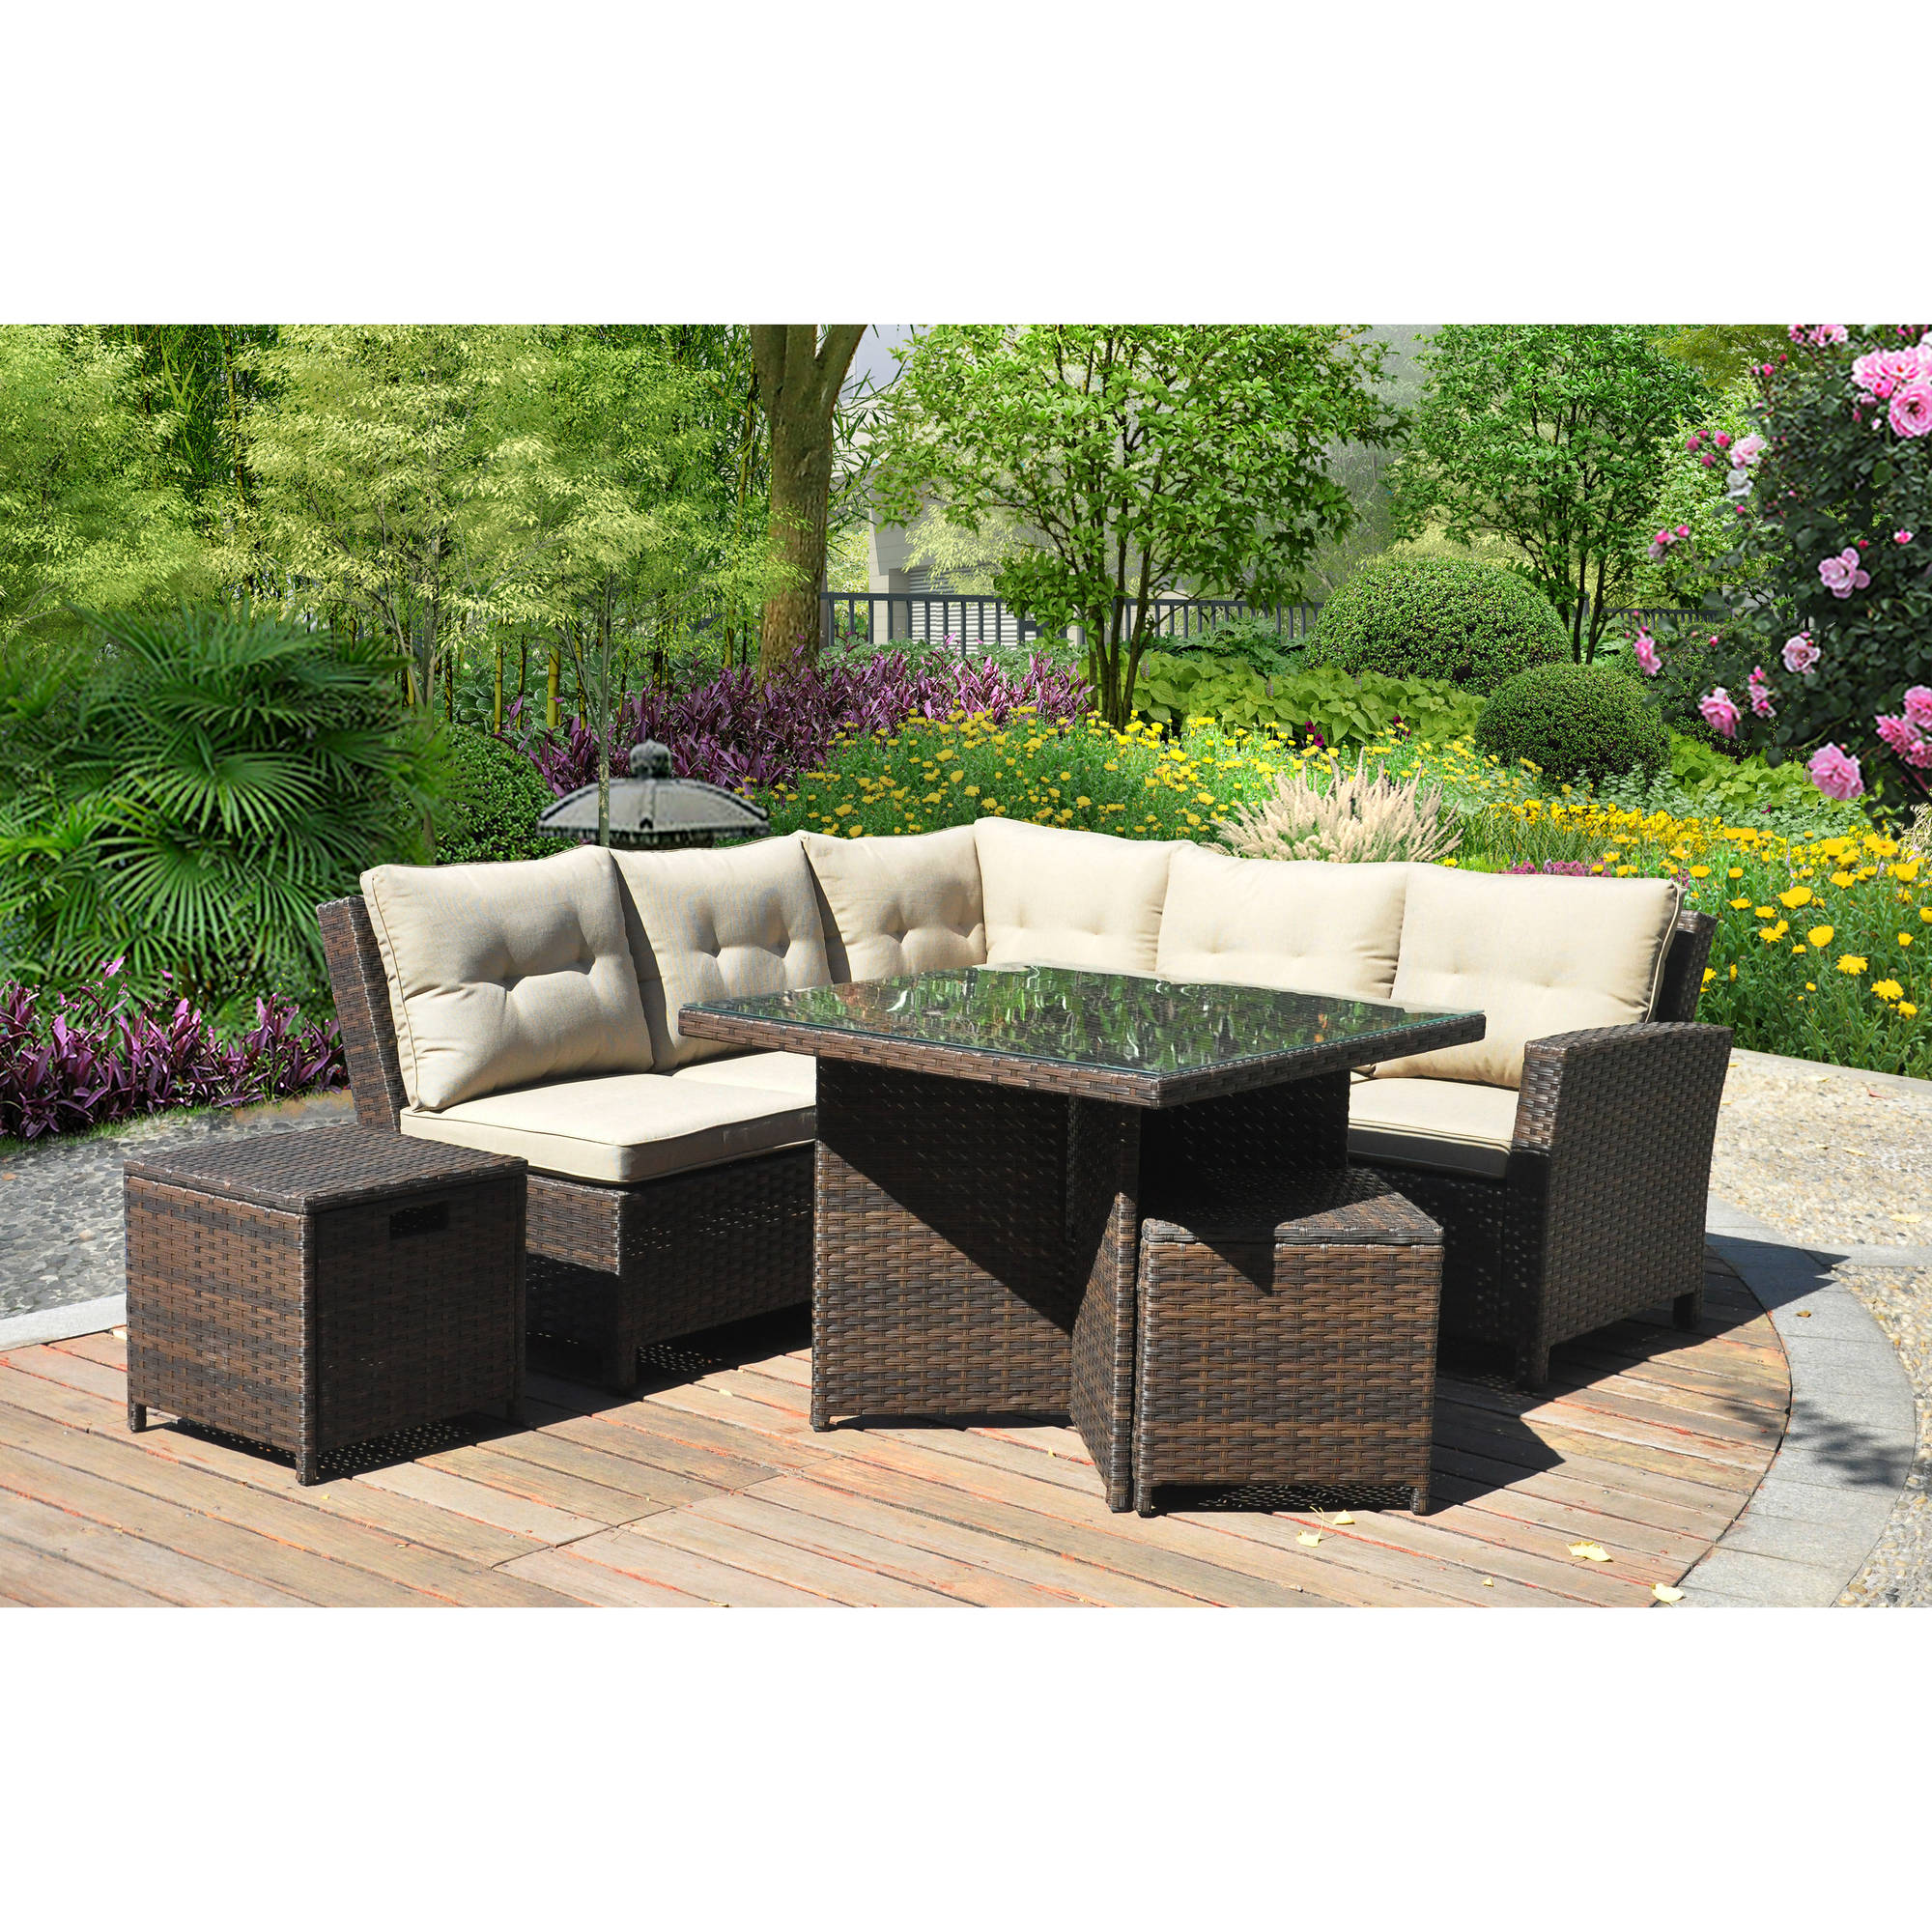 modway summon outdoor patio sunbrella sofa multiple colors rh walmart com better homes and gardens patio furniture pads better homes and garden patio furniture replacement parts